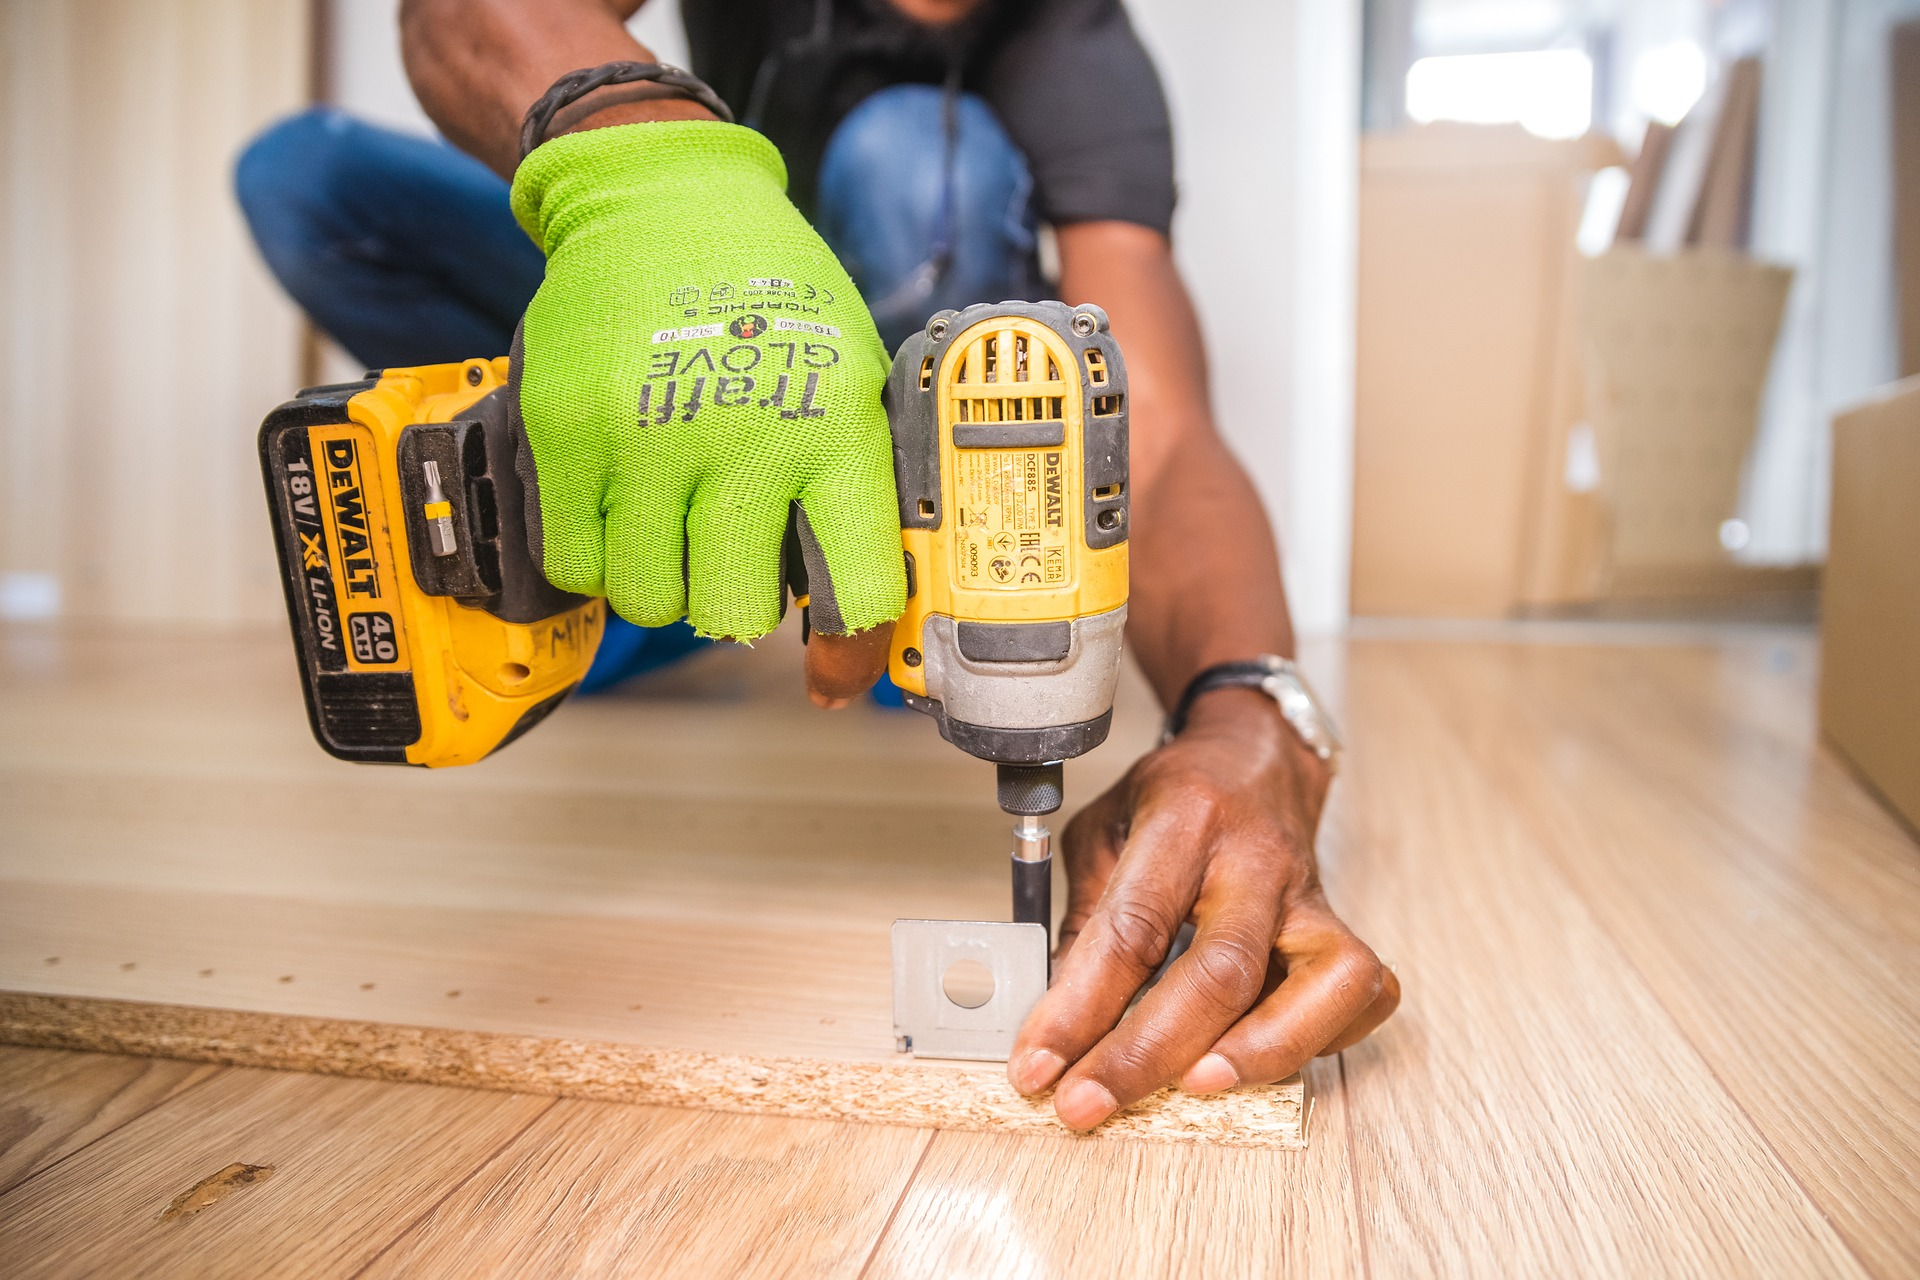 Tips of Drilling screw into wood